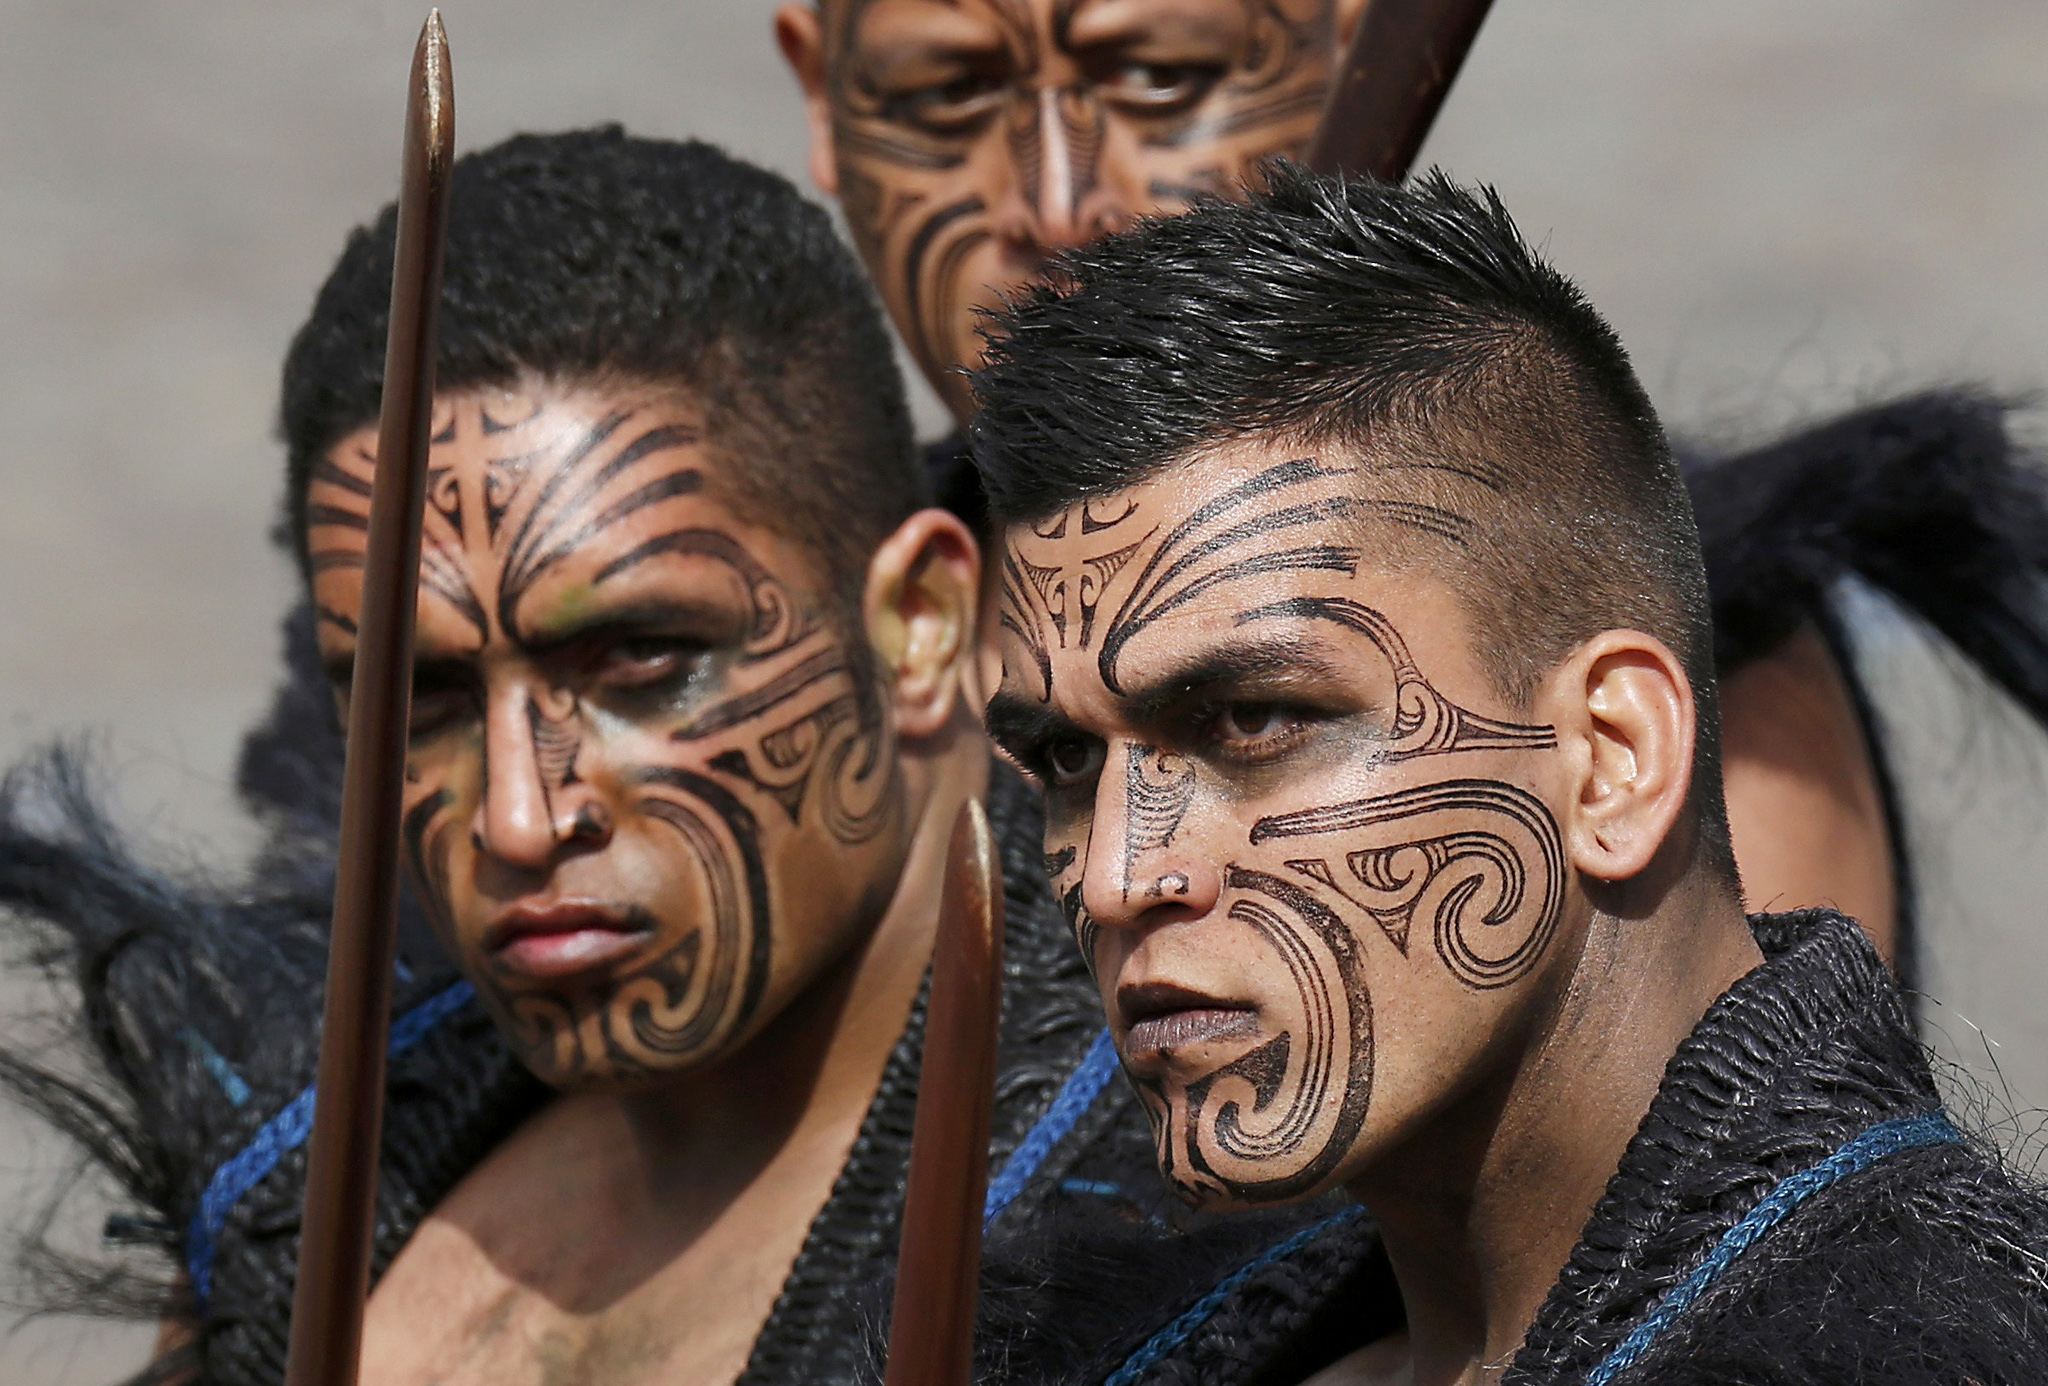 Maori warriors from New Zealand take part in the traditional Bastille Day military parade on the Champs Elysees in Paris, France, July 14, 2016.   REUTERS/Benoit Tessier